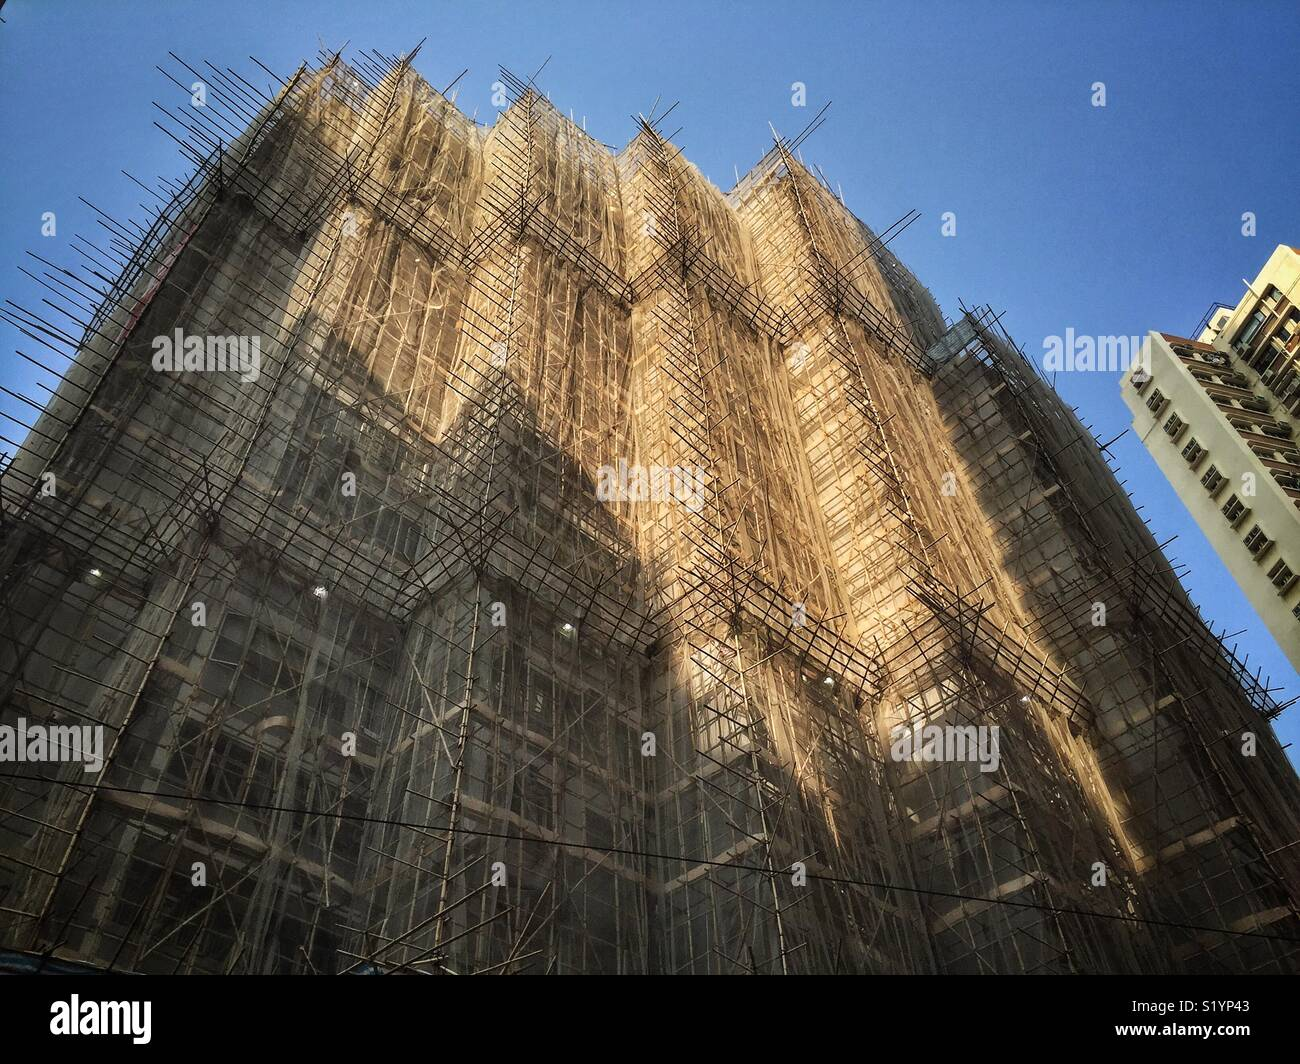 A high-rise residential apartment building covered with bamboo scaffolding in Wan Chai, Hong Kong Island - Stock Image